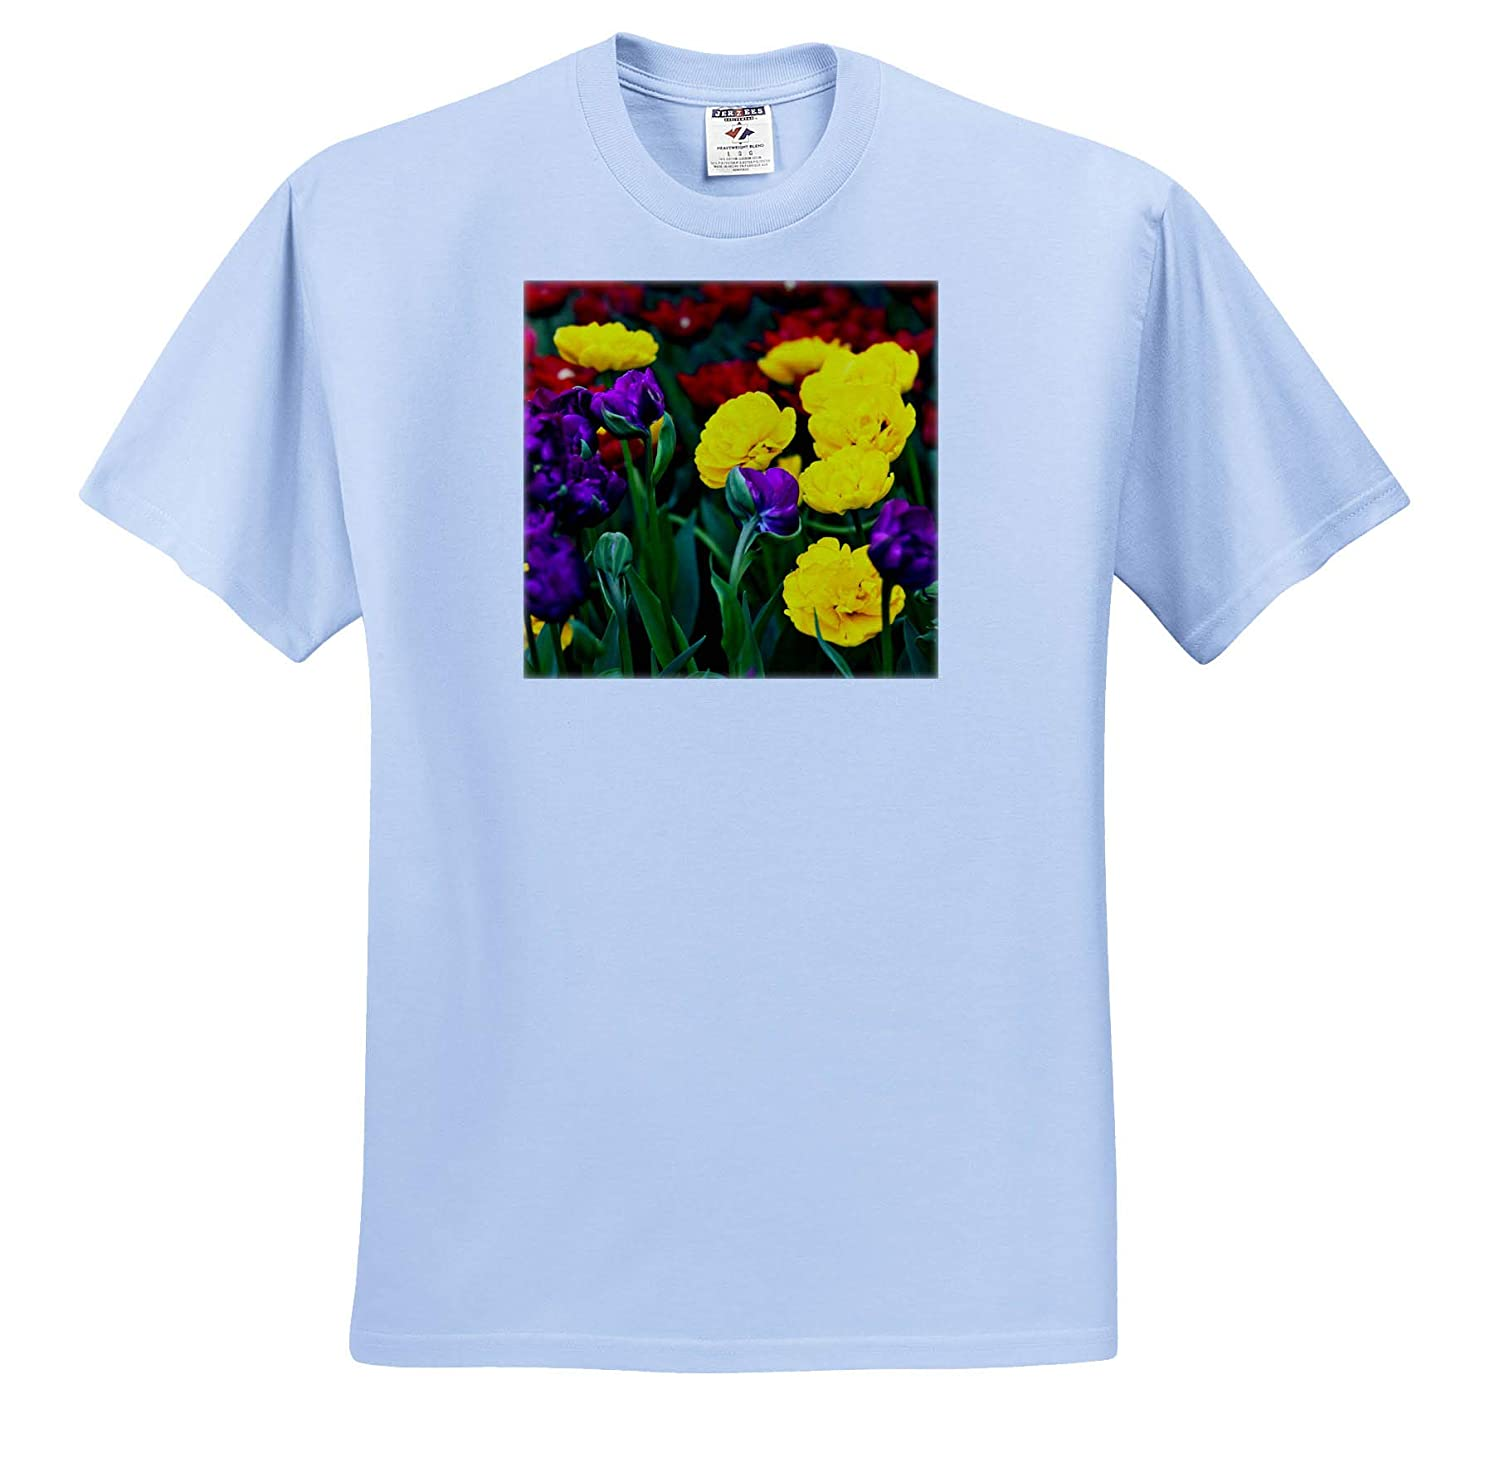 3dRose Alexis Photography Flowers Tulips T-Shirts red Decorative Tulip Flowers on a Flowerbed in Spring Purple Yellow